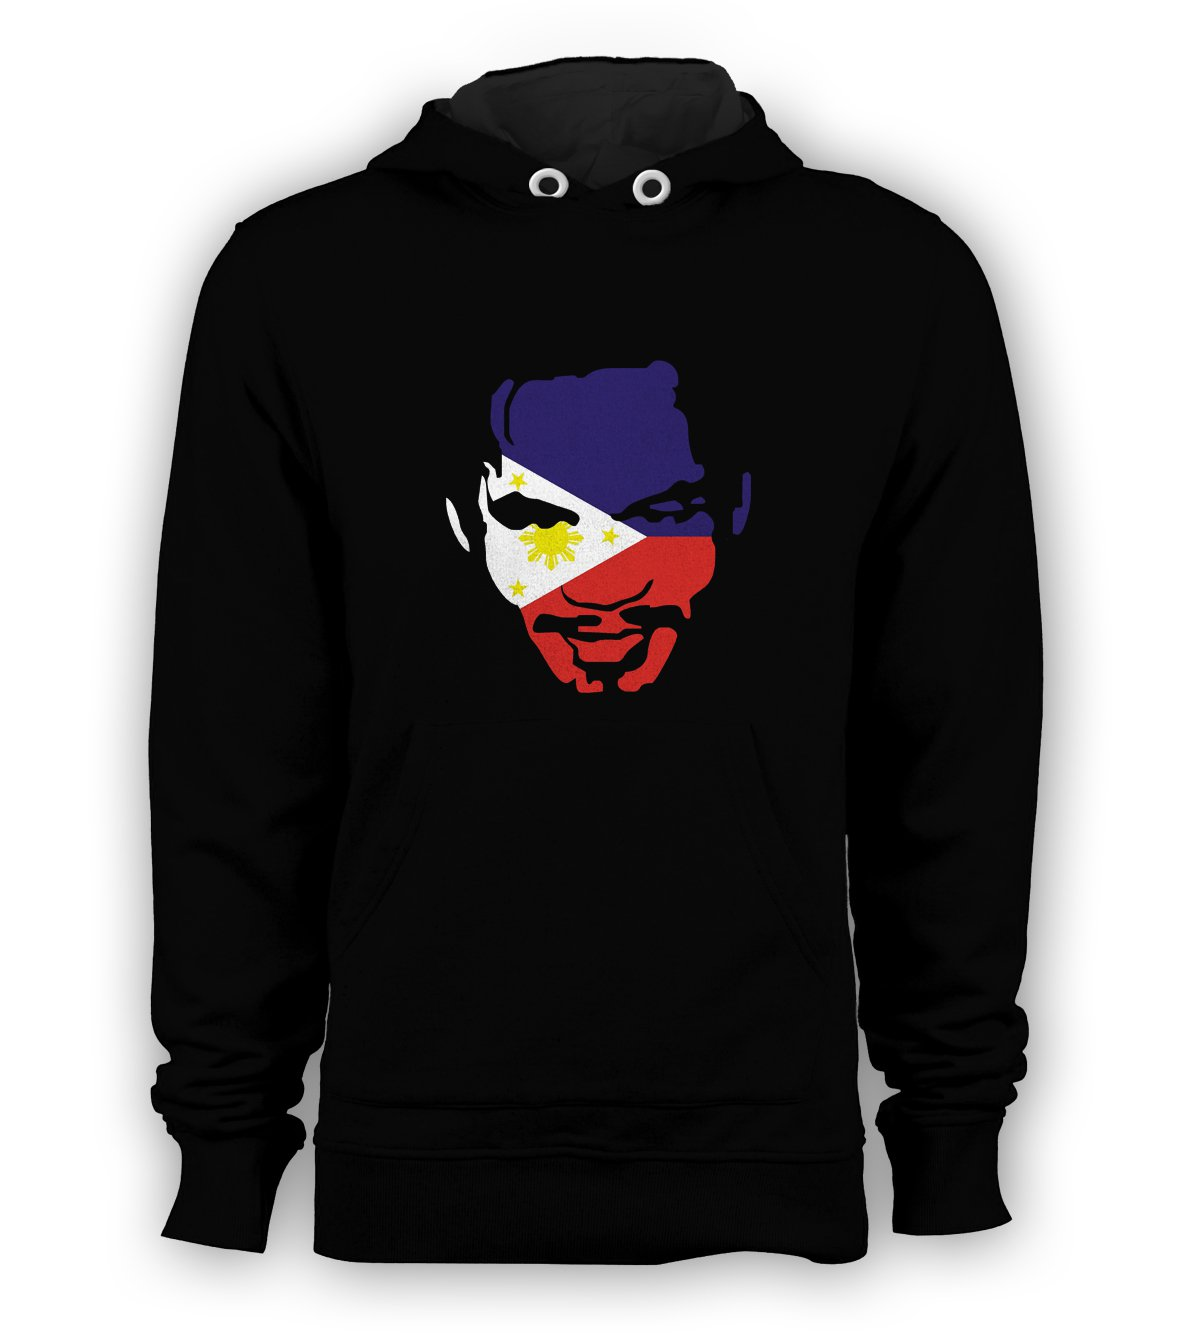 Manny Pacquiao Face Boxer Pullover Hoodie Men Sweatshirts Size S to 3XL New Black